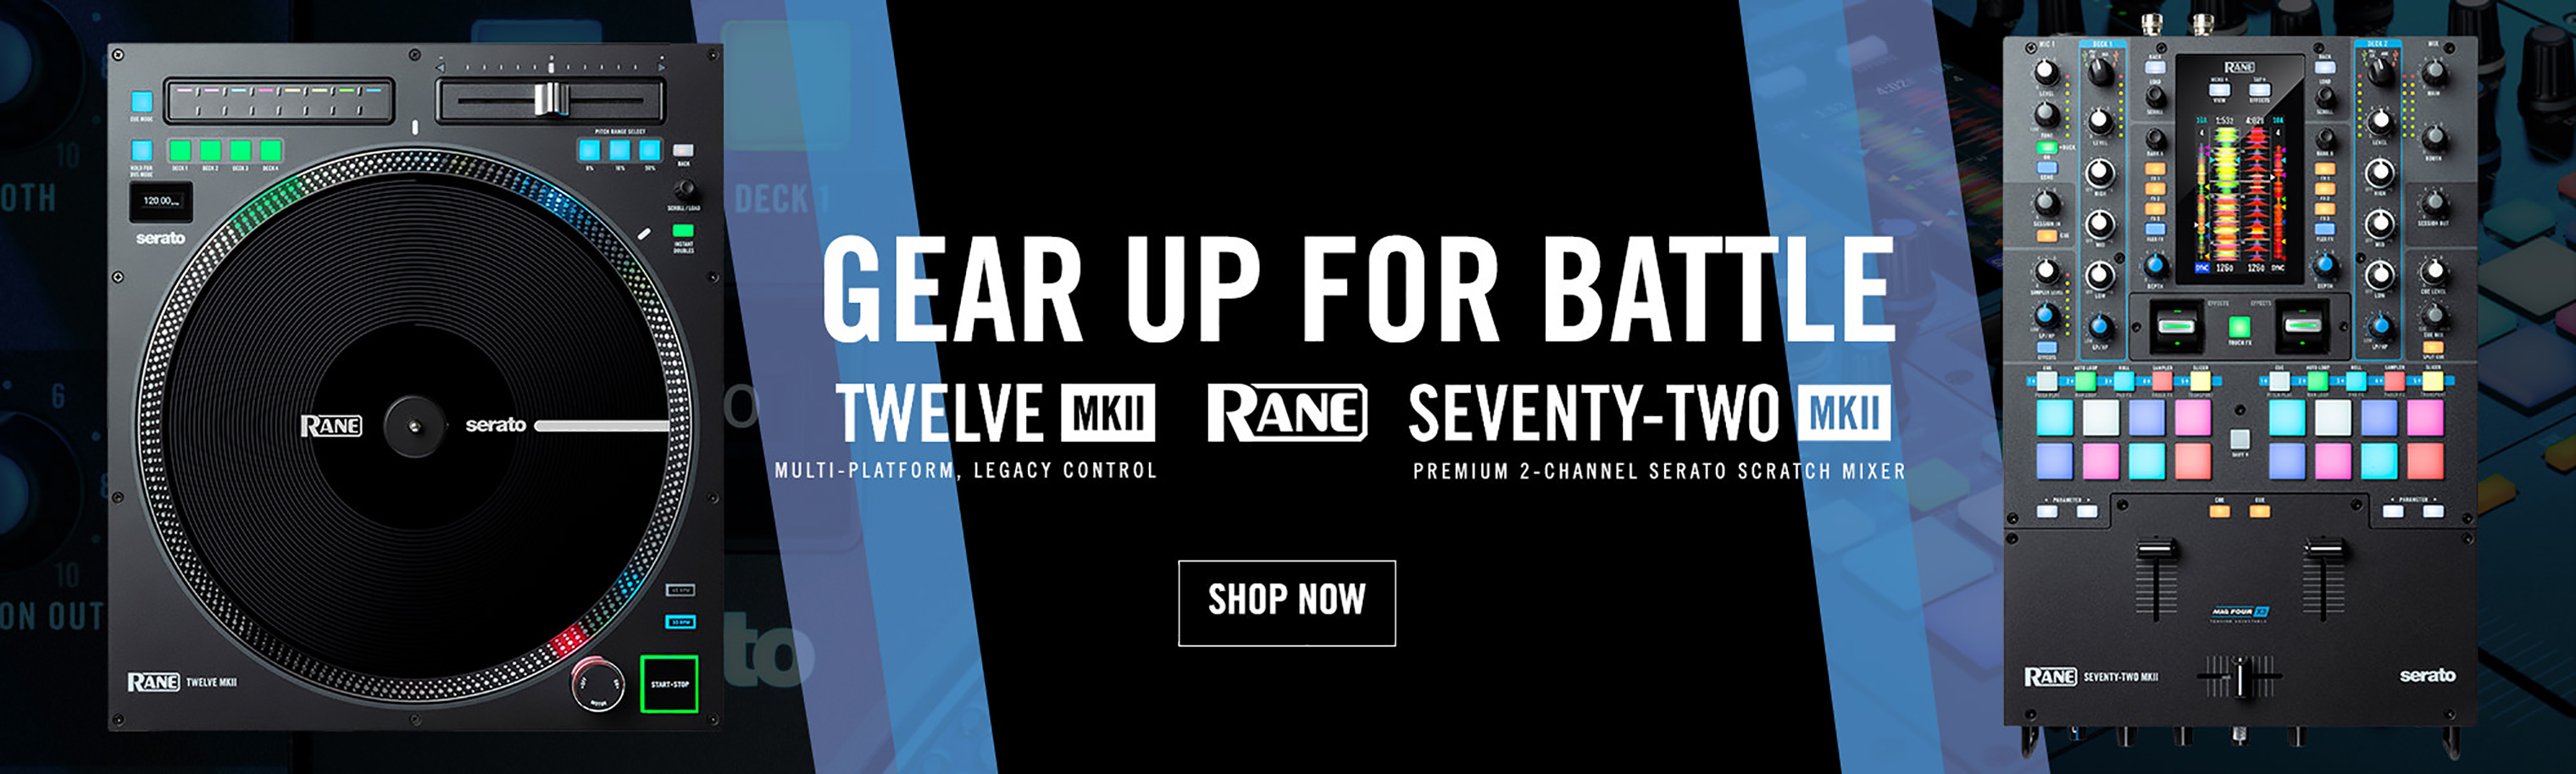 Rane New Products